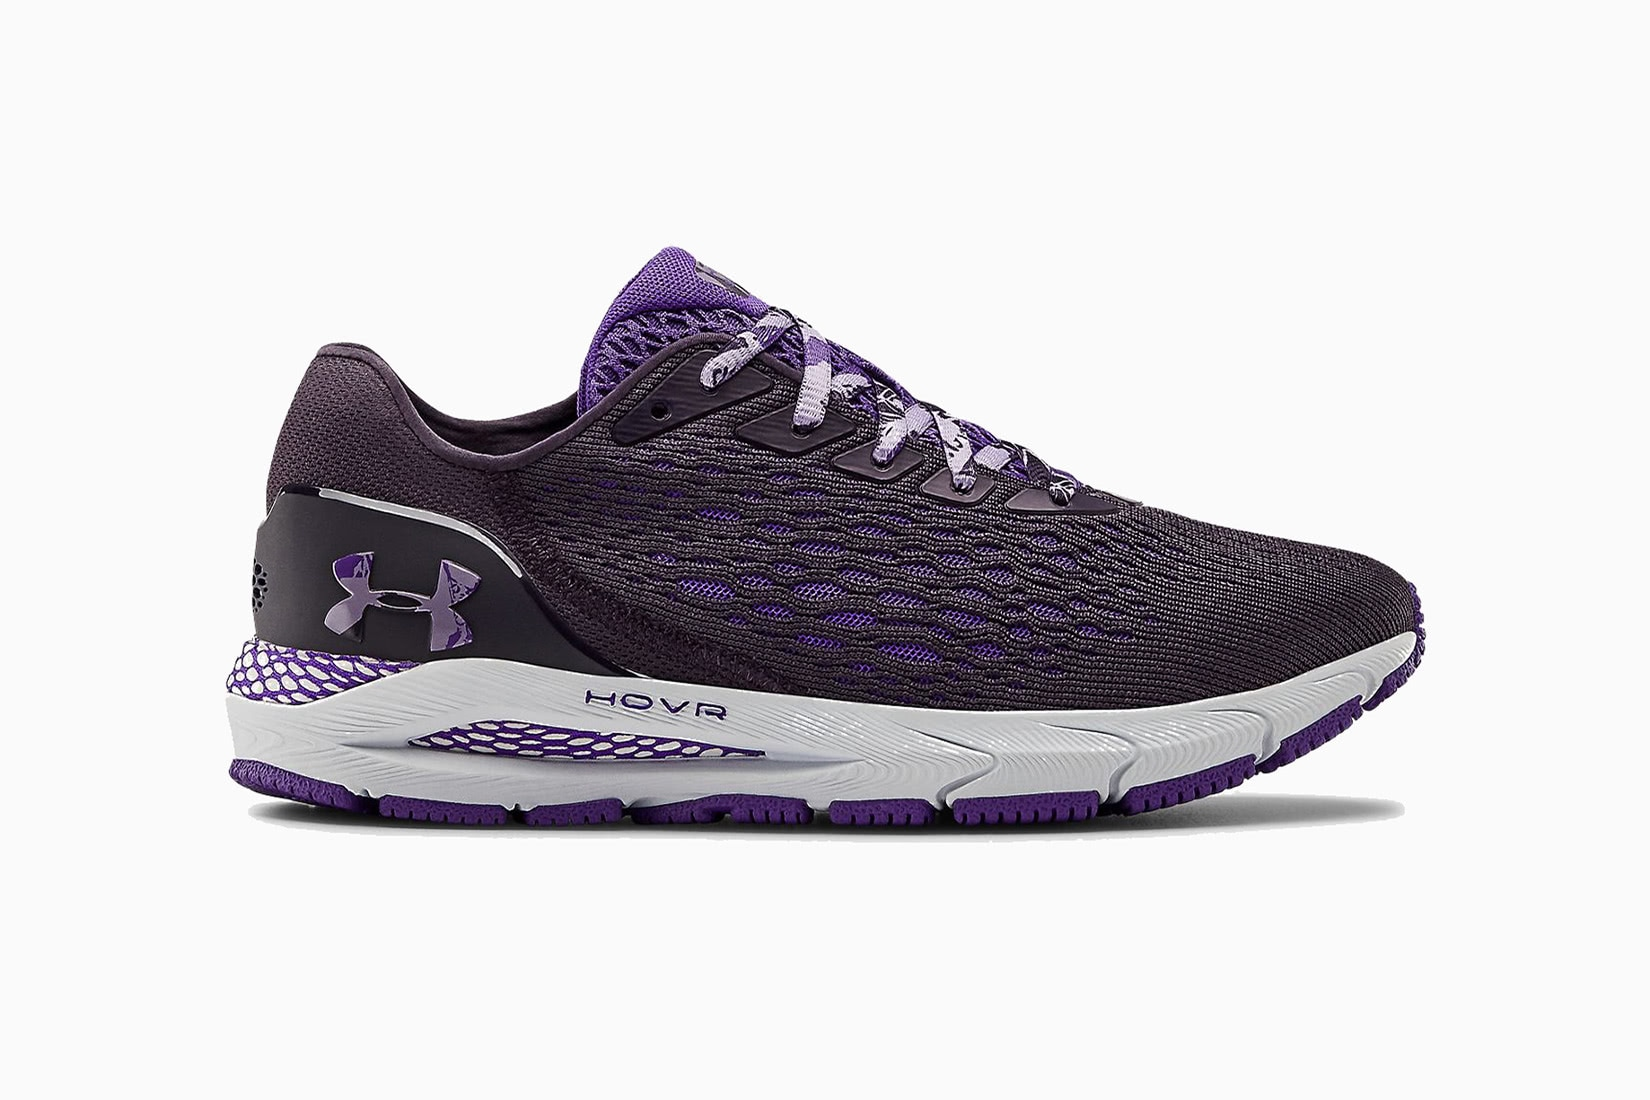 best women walking shoes under armour HOVR sonic 3 sneakers - Luxe Digital